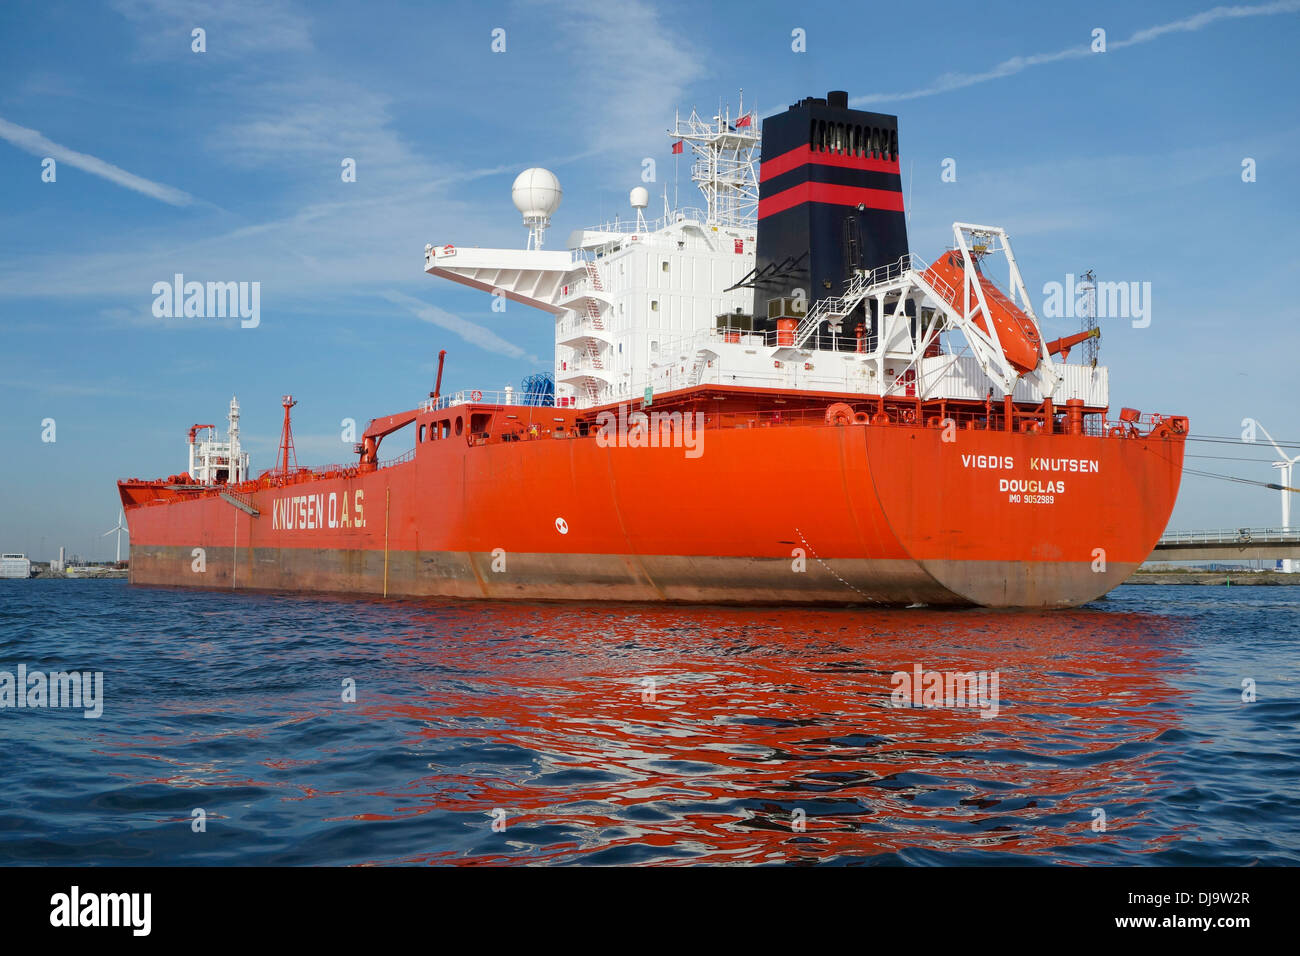 Tanker during loading operation in the largest energy port in the Nordic Region. Gothenburg Energy Harbour. Sweden - Stock Image